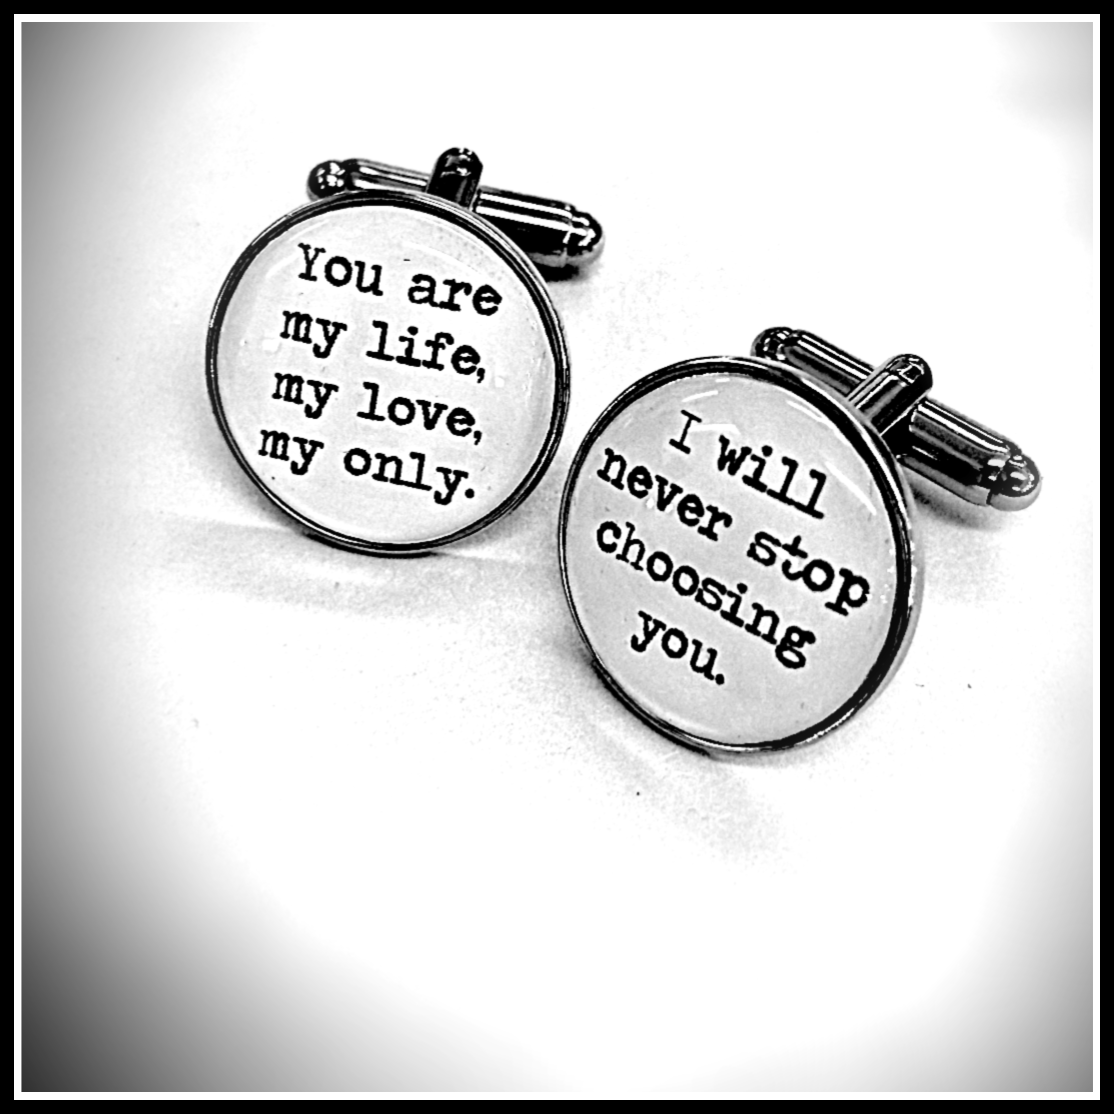 Wedding Vows Paper Anniversary Gift For Husband Song Lyrics Gift UK, Personalised Cufflinks For Groom 1st Anniversary Gift For Him